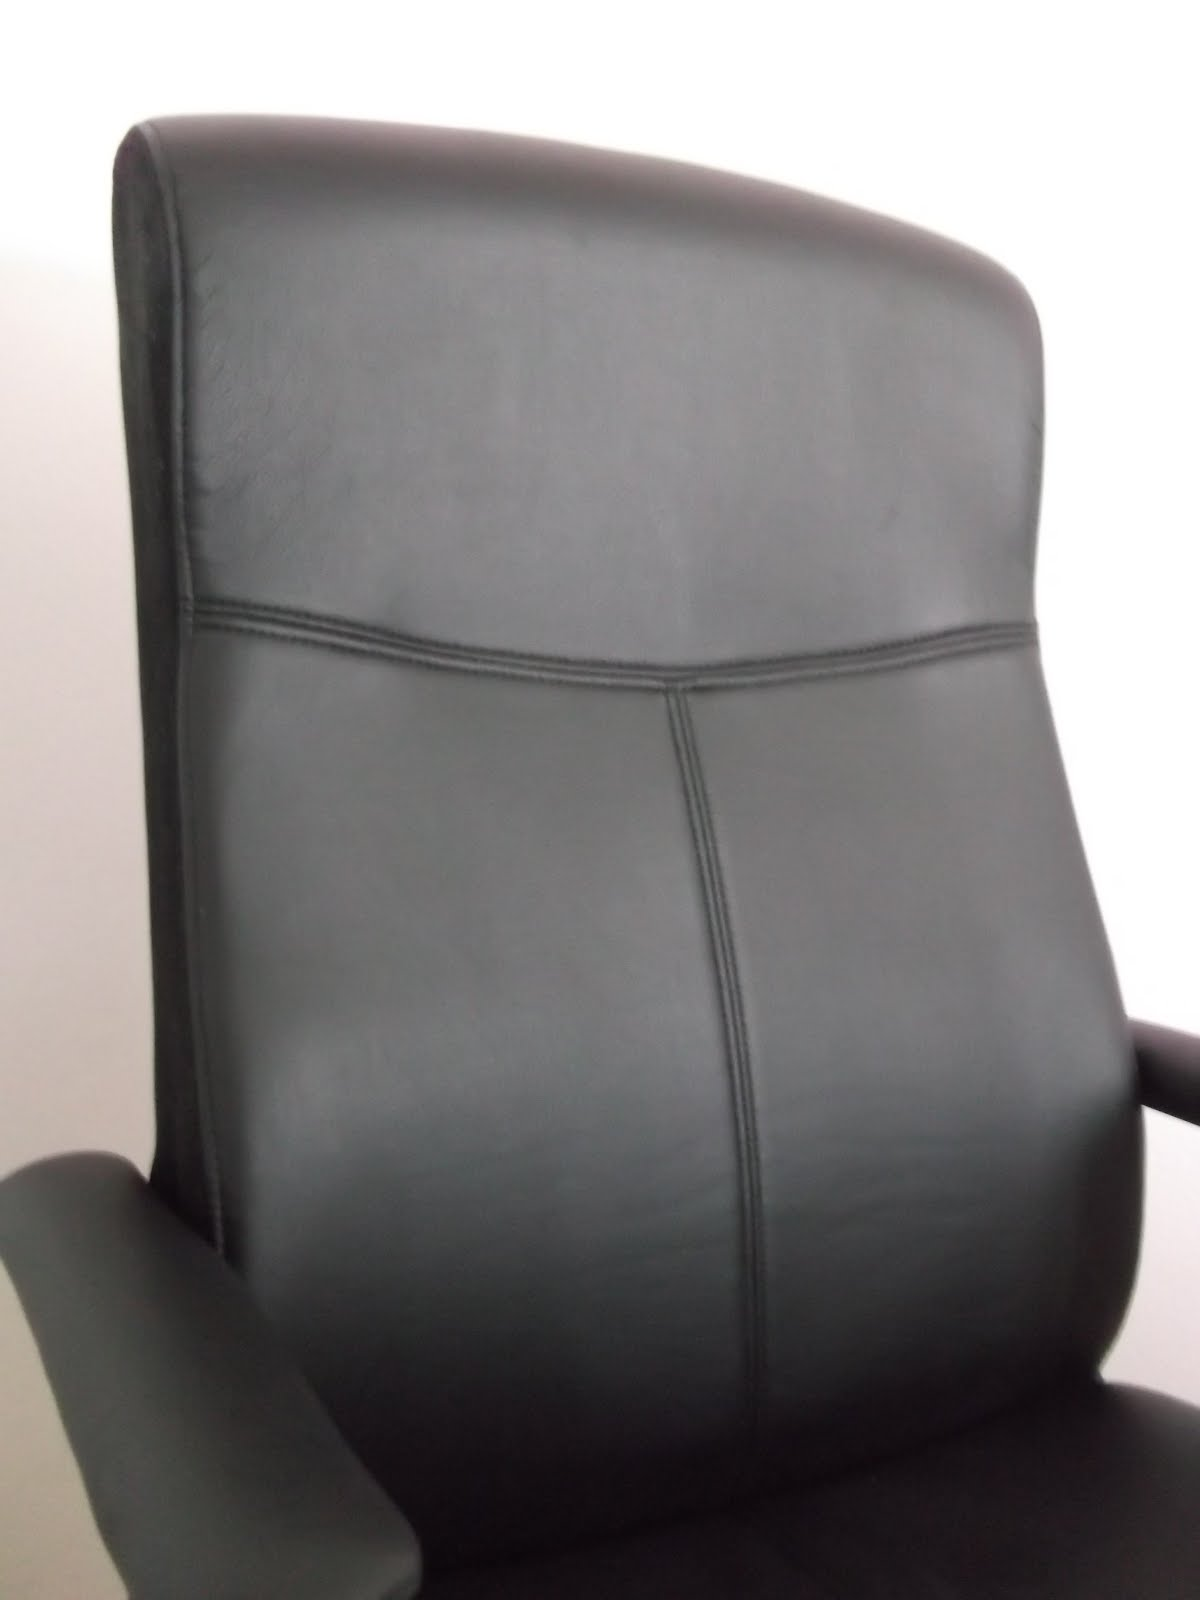 Swivel Chair Ikea Uk Roman Back Extension Consumer Review Office Malkolm